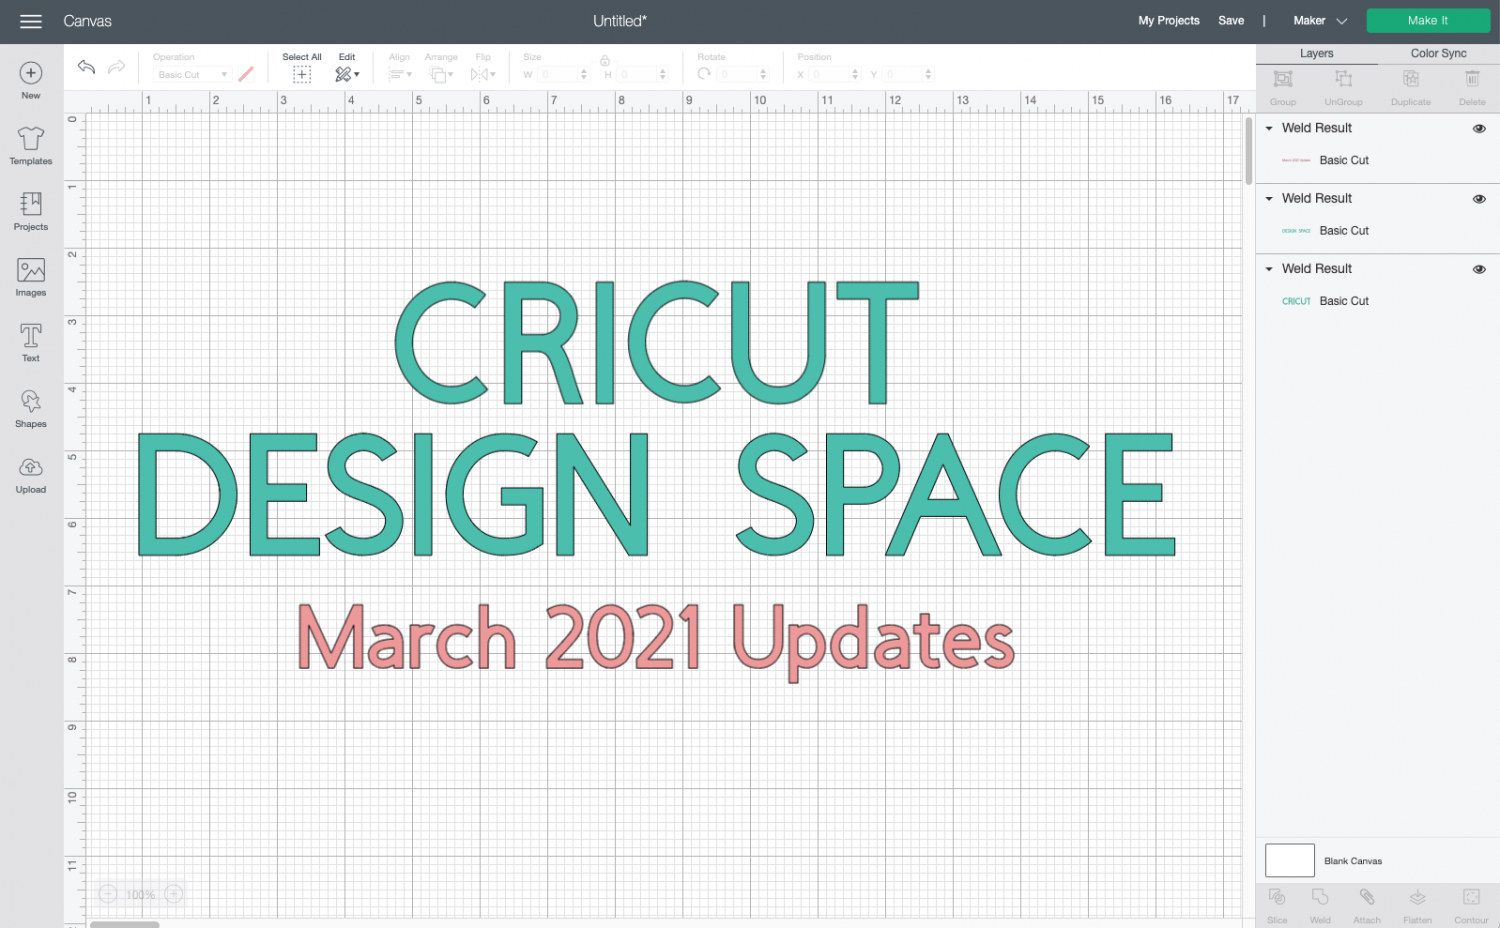 "Cricut Design Space with ""Cricut Design Space March 2021 Updates"" in text"